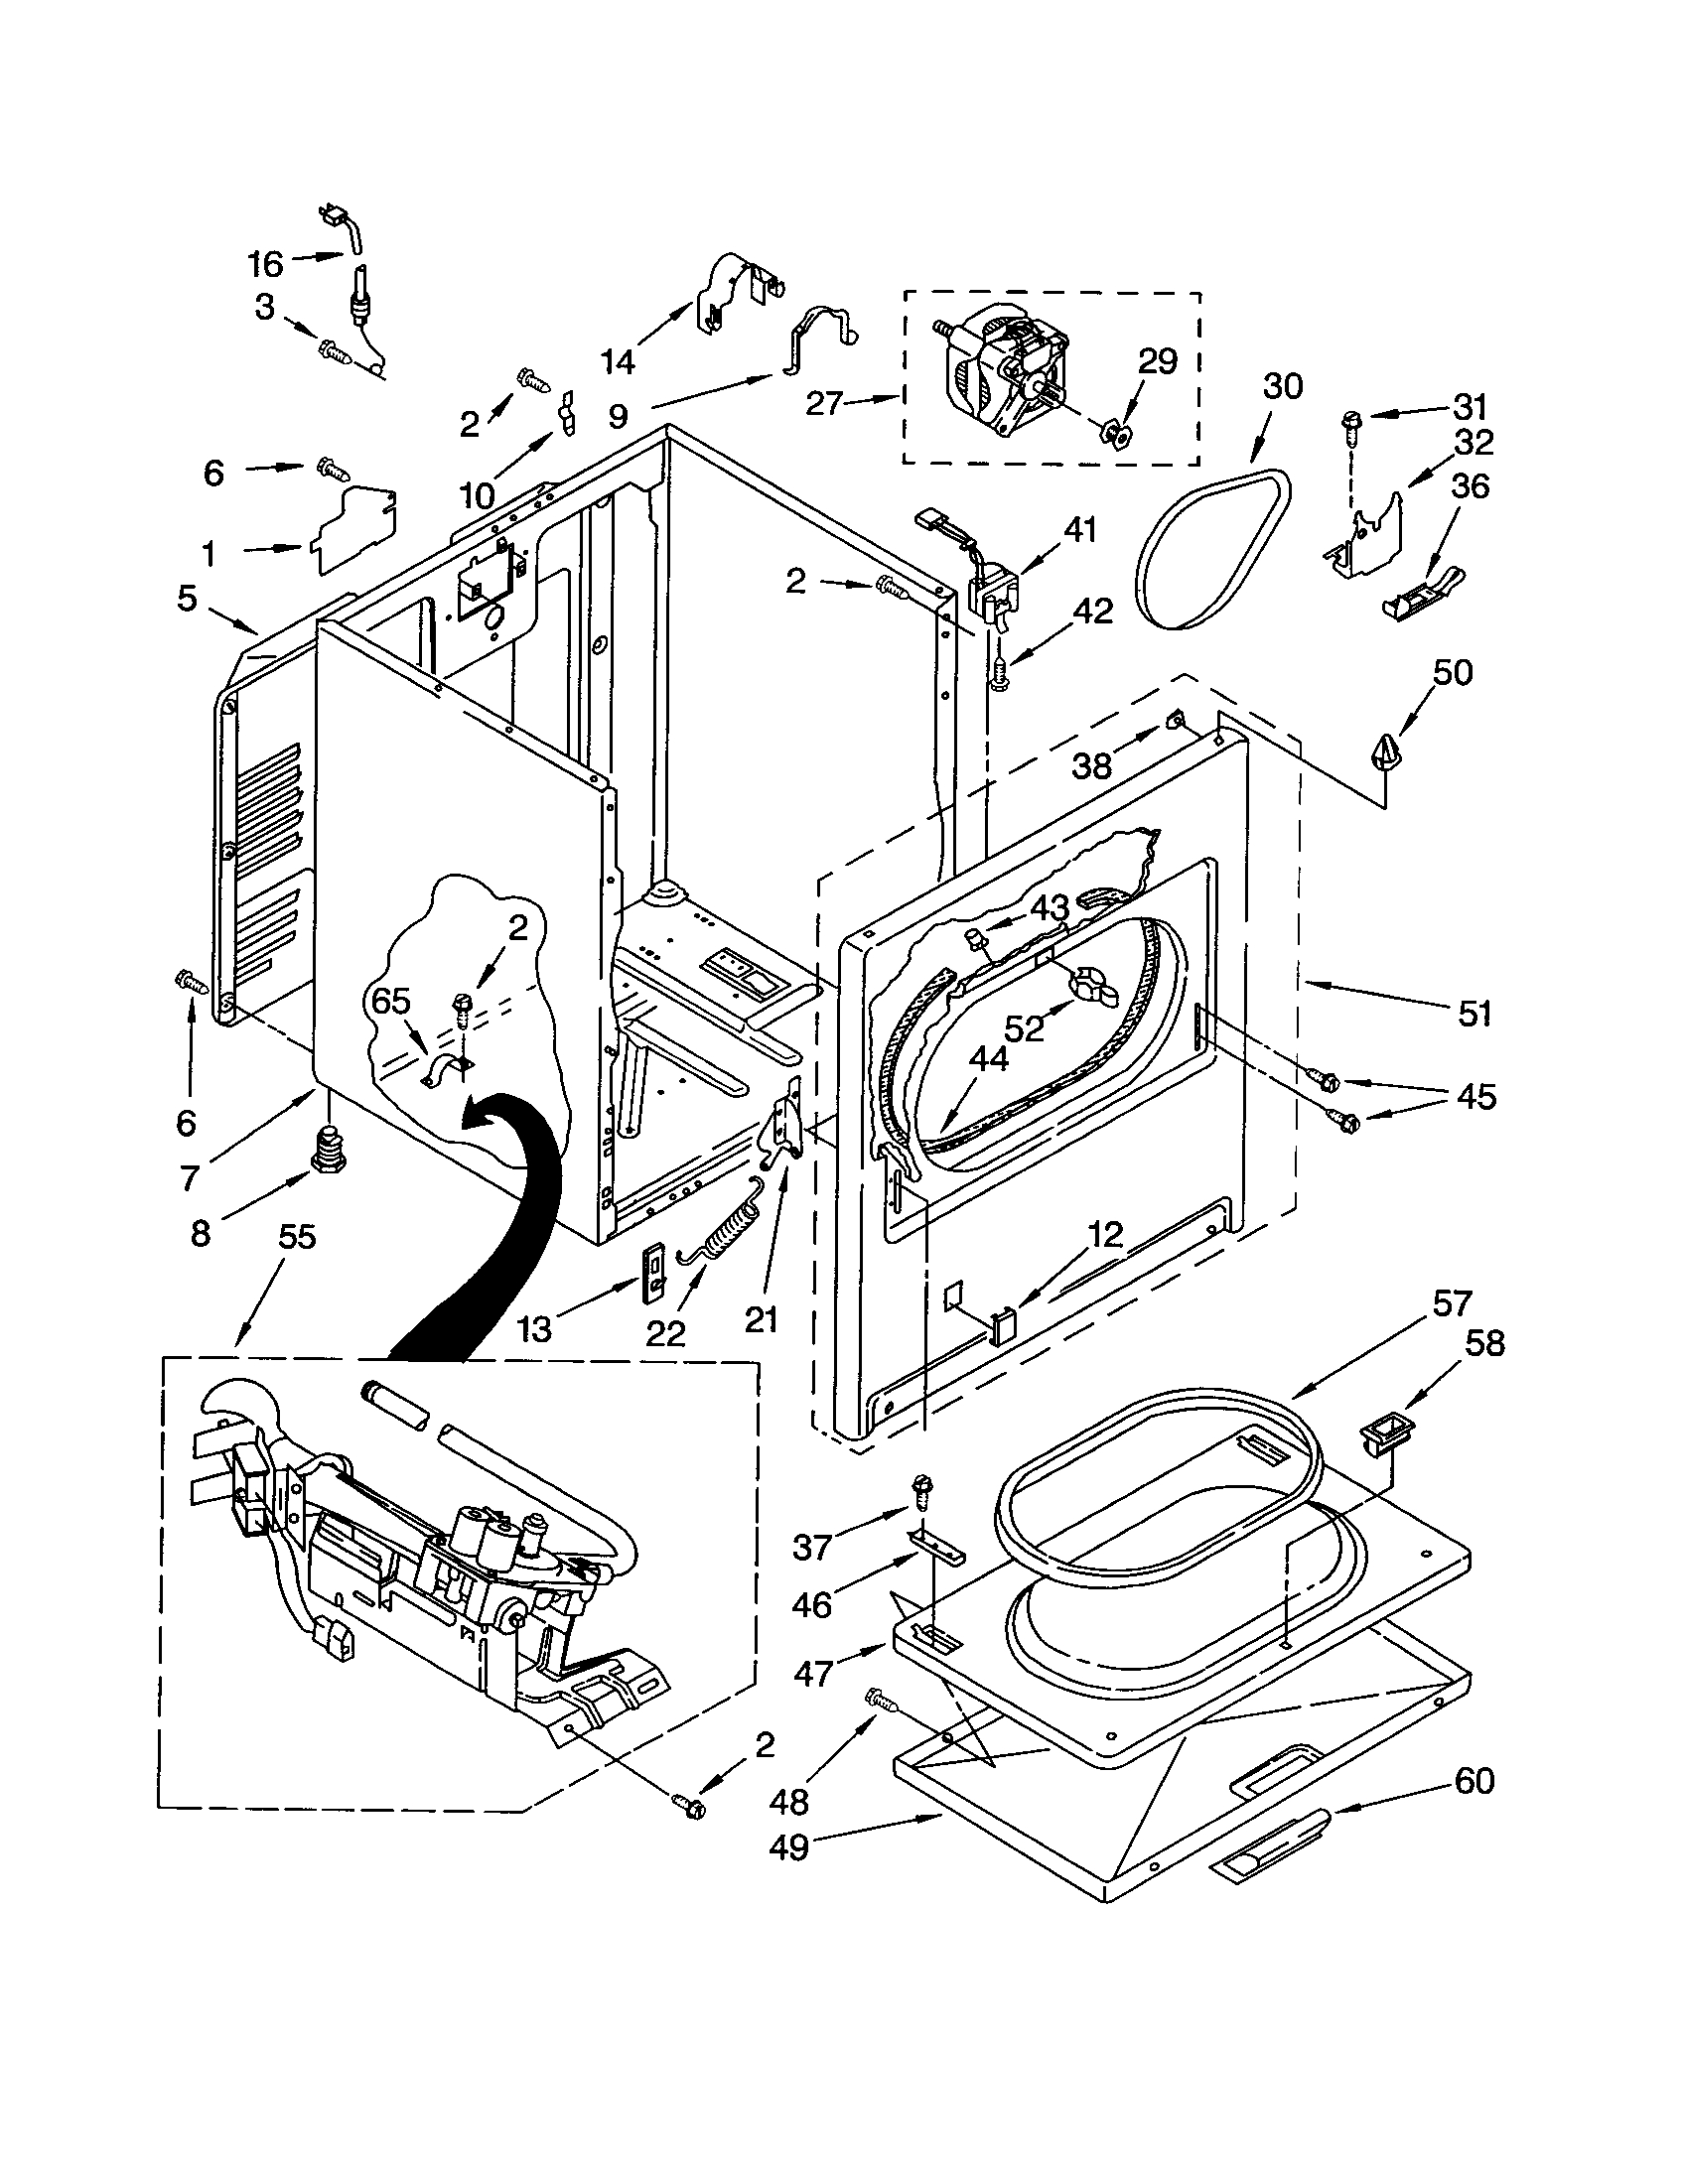 kenmore 400 dryer wiring diagram three way switch wire 90 series parts | automotive images